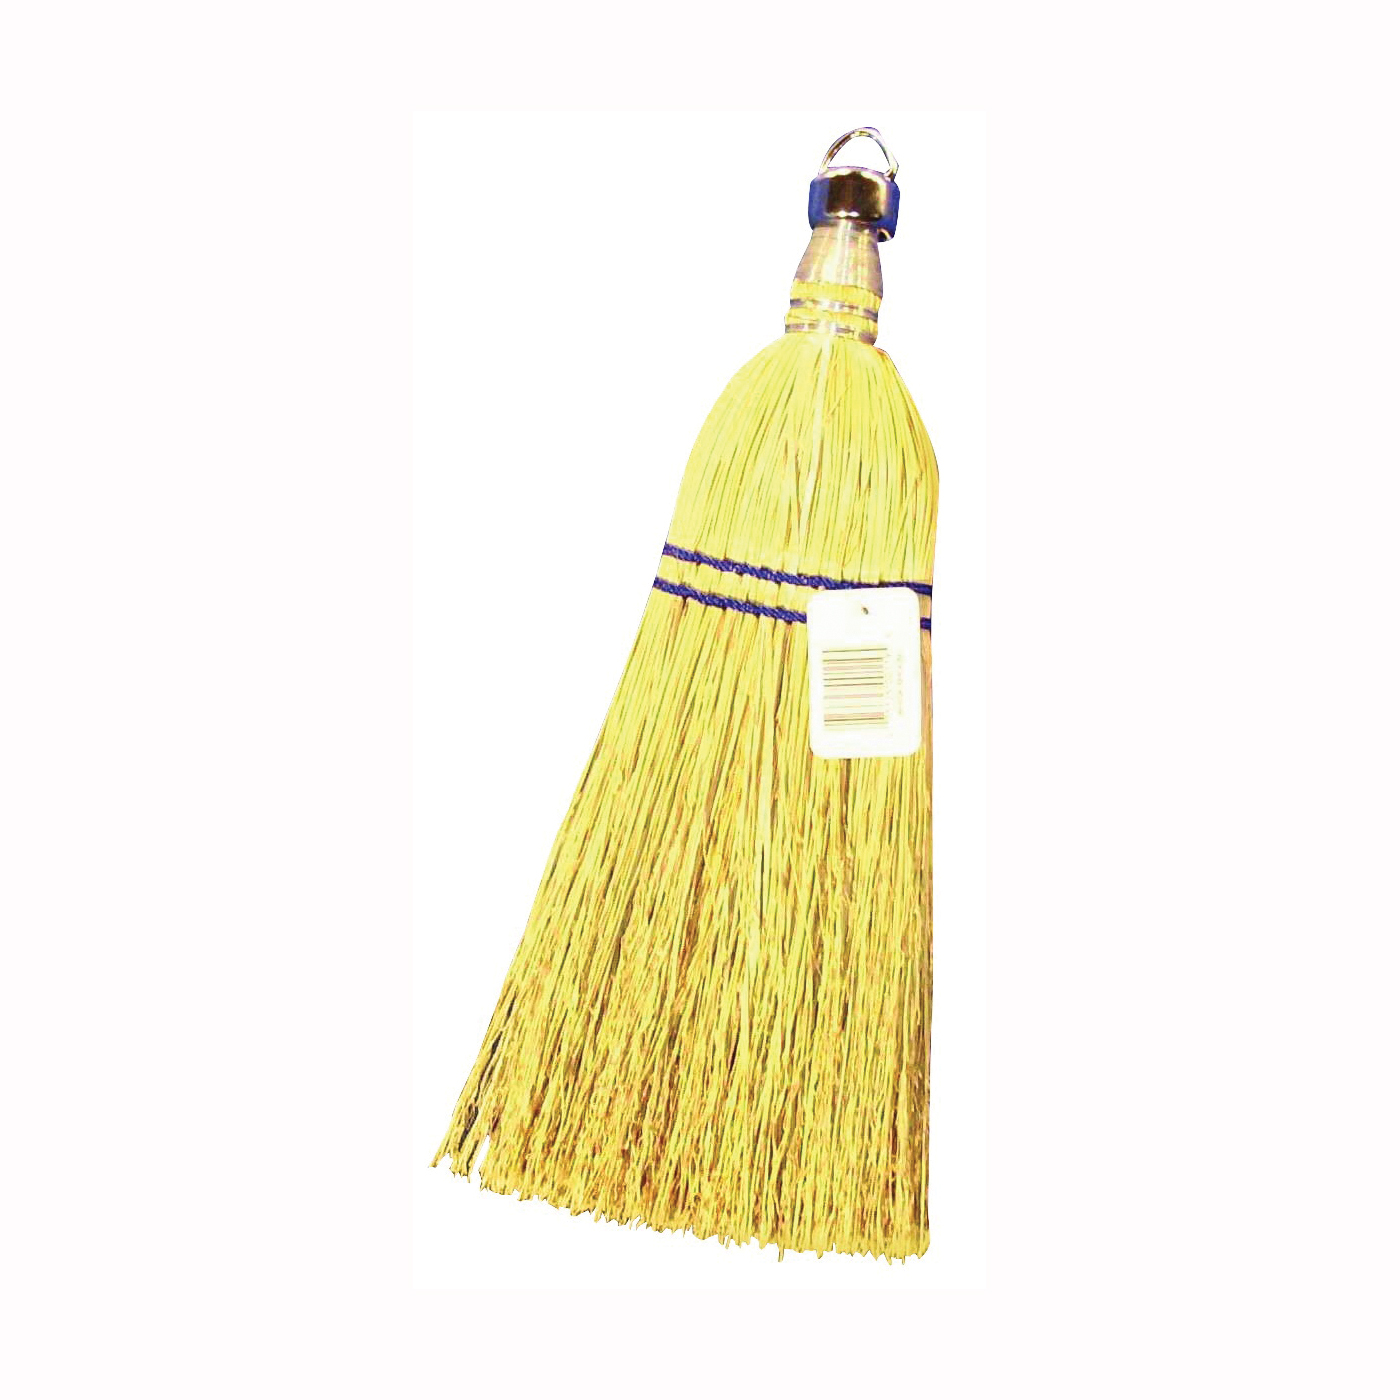 Picture of Chickasaw 19 Whisk Broom, 4 in Sweep Face, 7-1/2 in L Trim, Palmyra Fiber Bristle, 11-3/4 in OAL